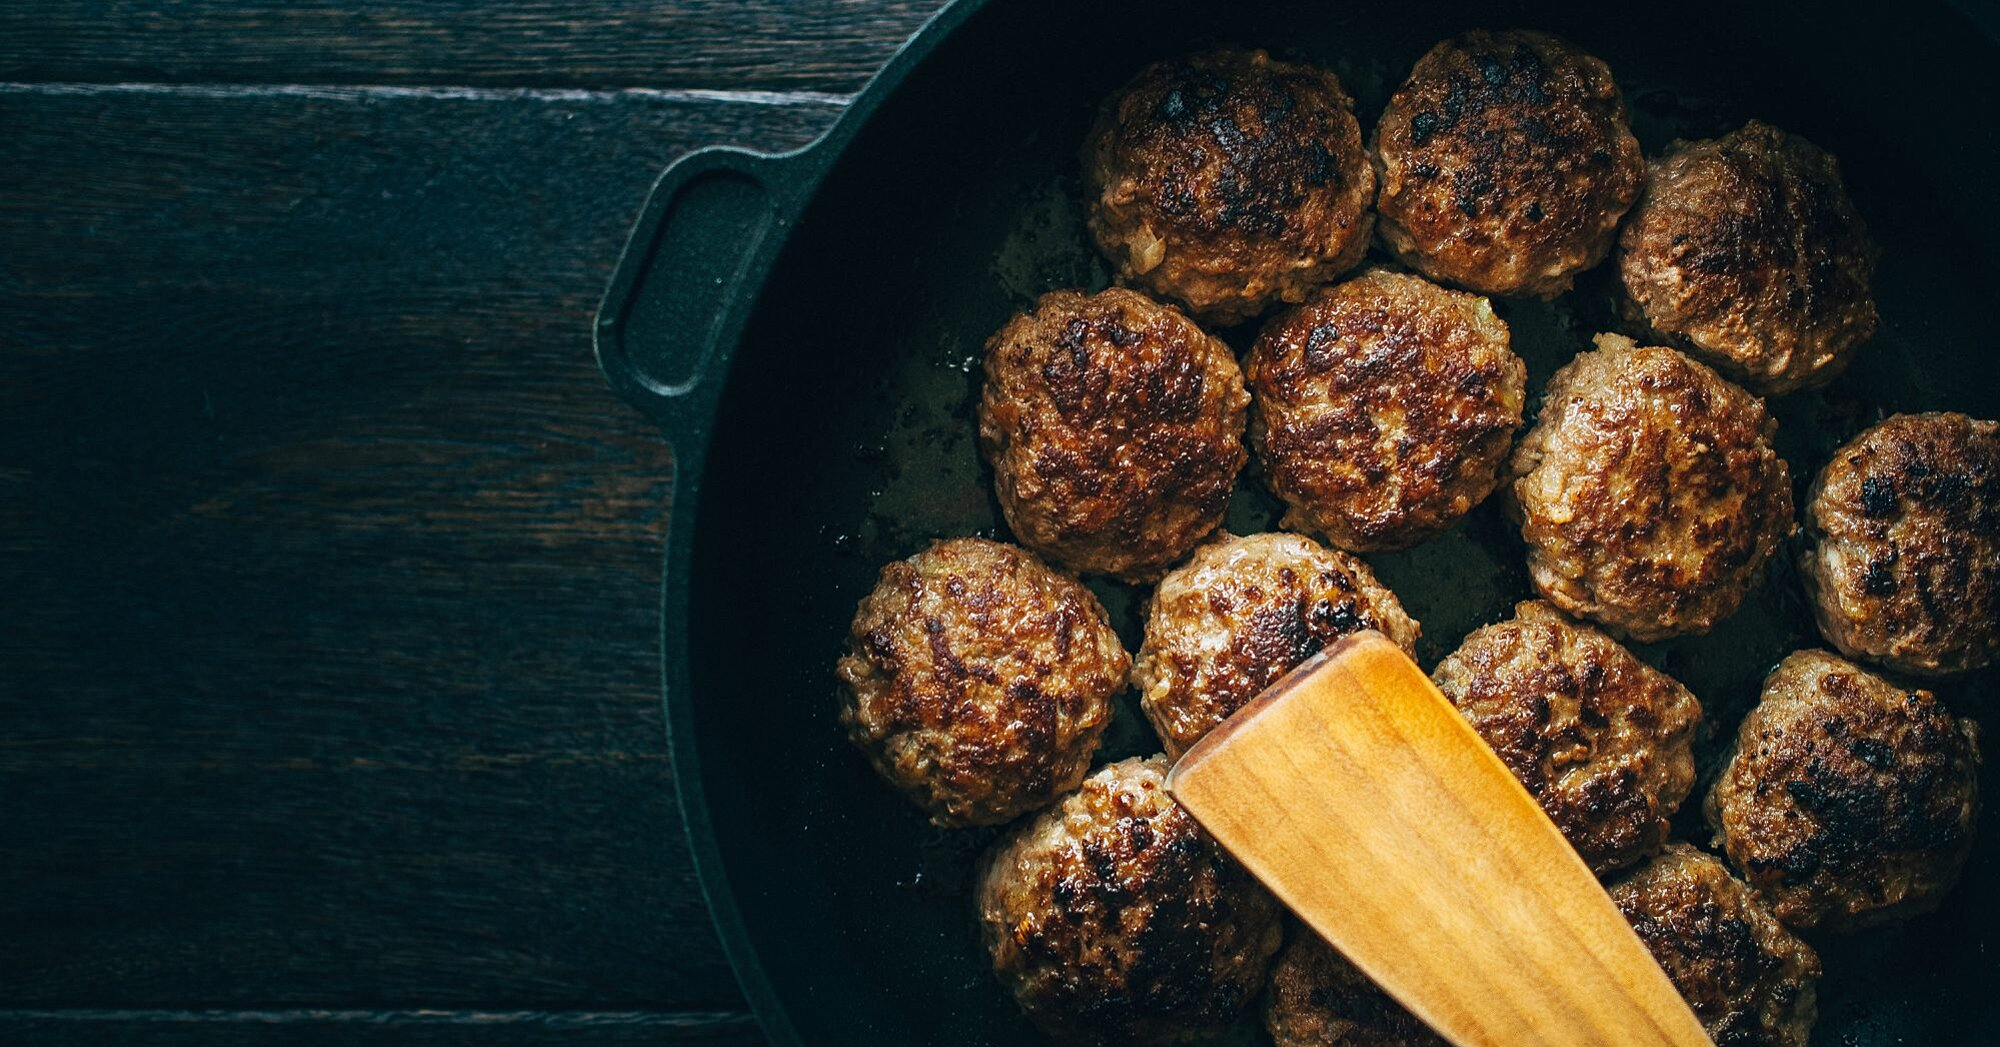 5 Easy Ways to Make Tastier Meatballs